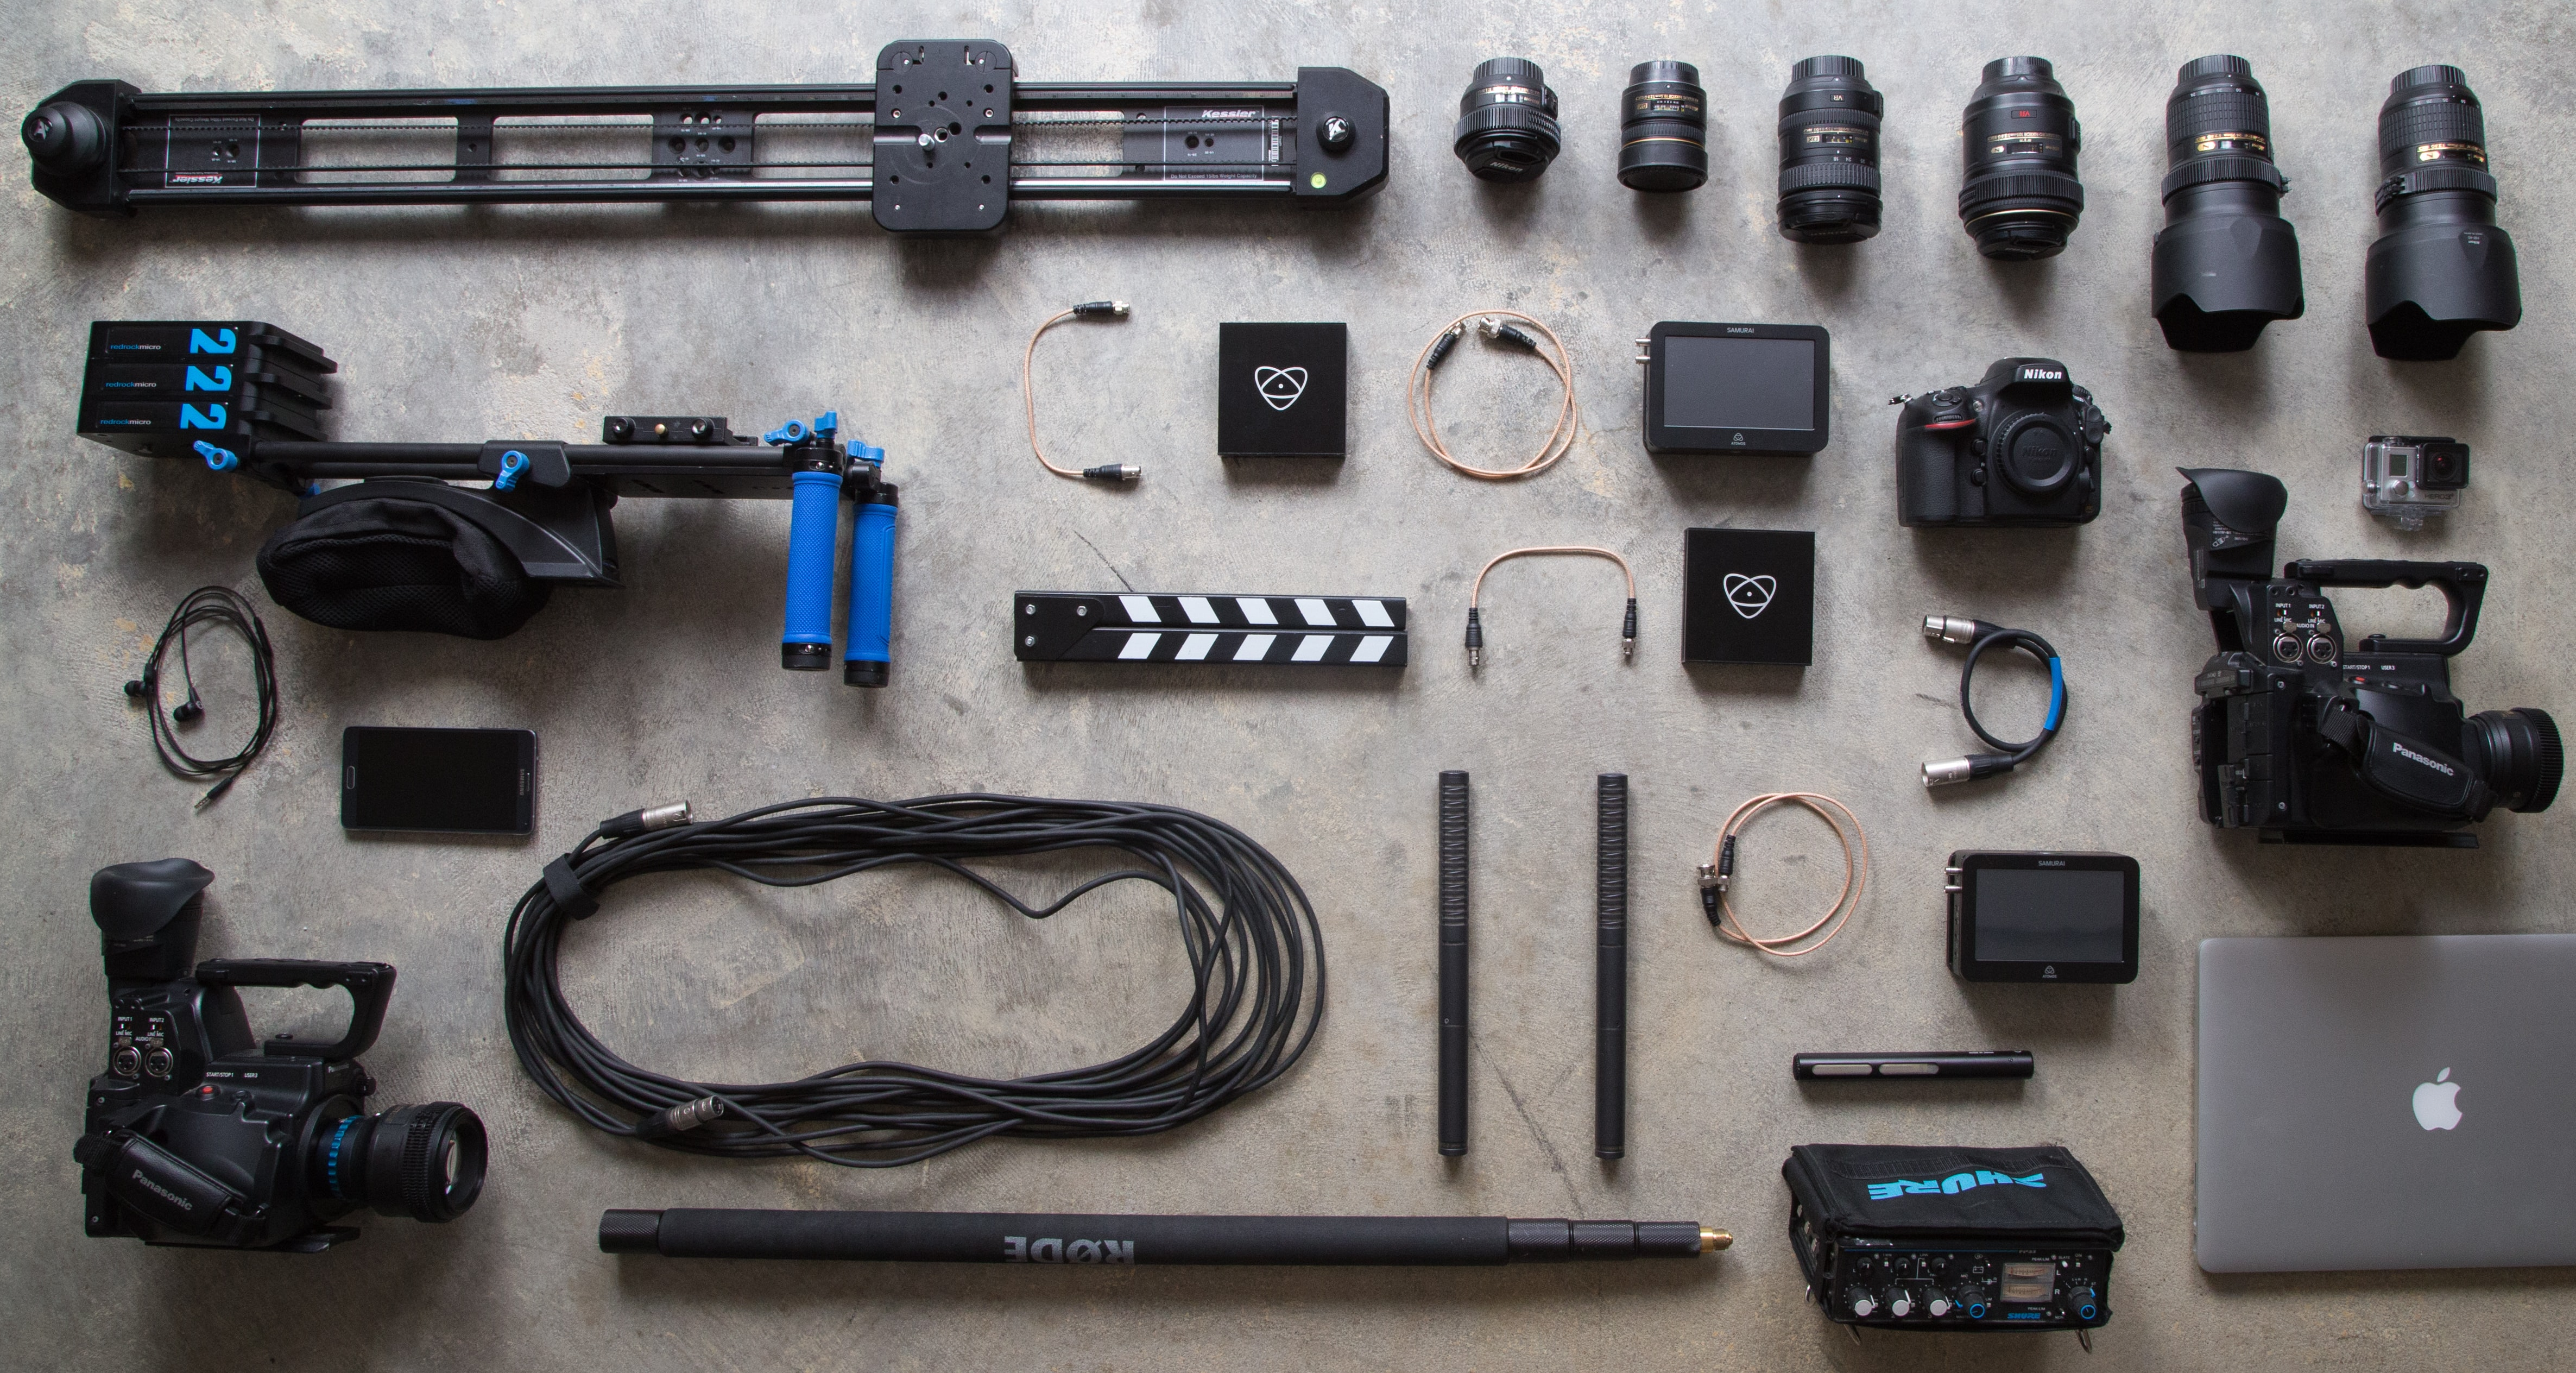 Top down of various camera equipment including cables, receivers, stands, tripods, boom mics, lenses, a camera, headphones, a macbook, a GoPro, a Nikon, and Panasonic video cameras